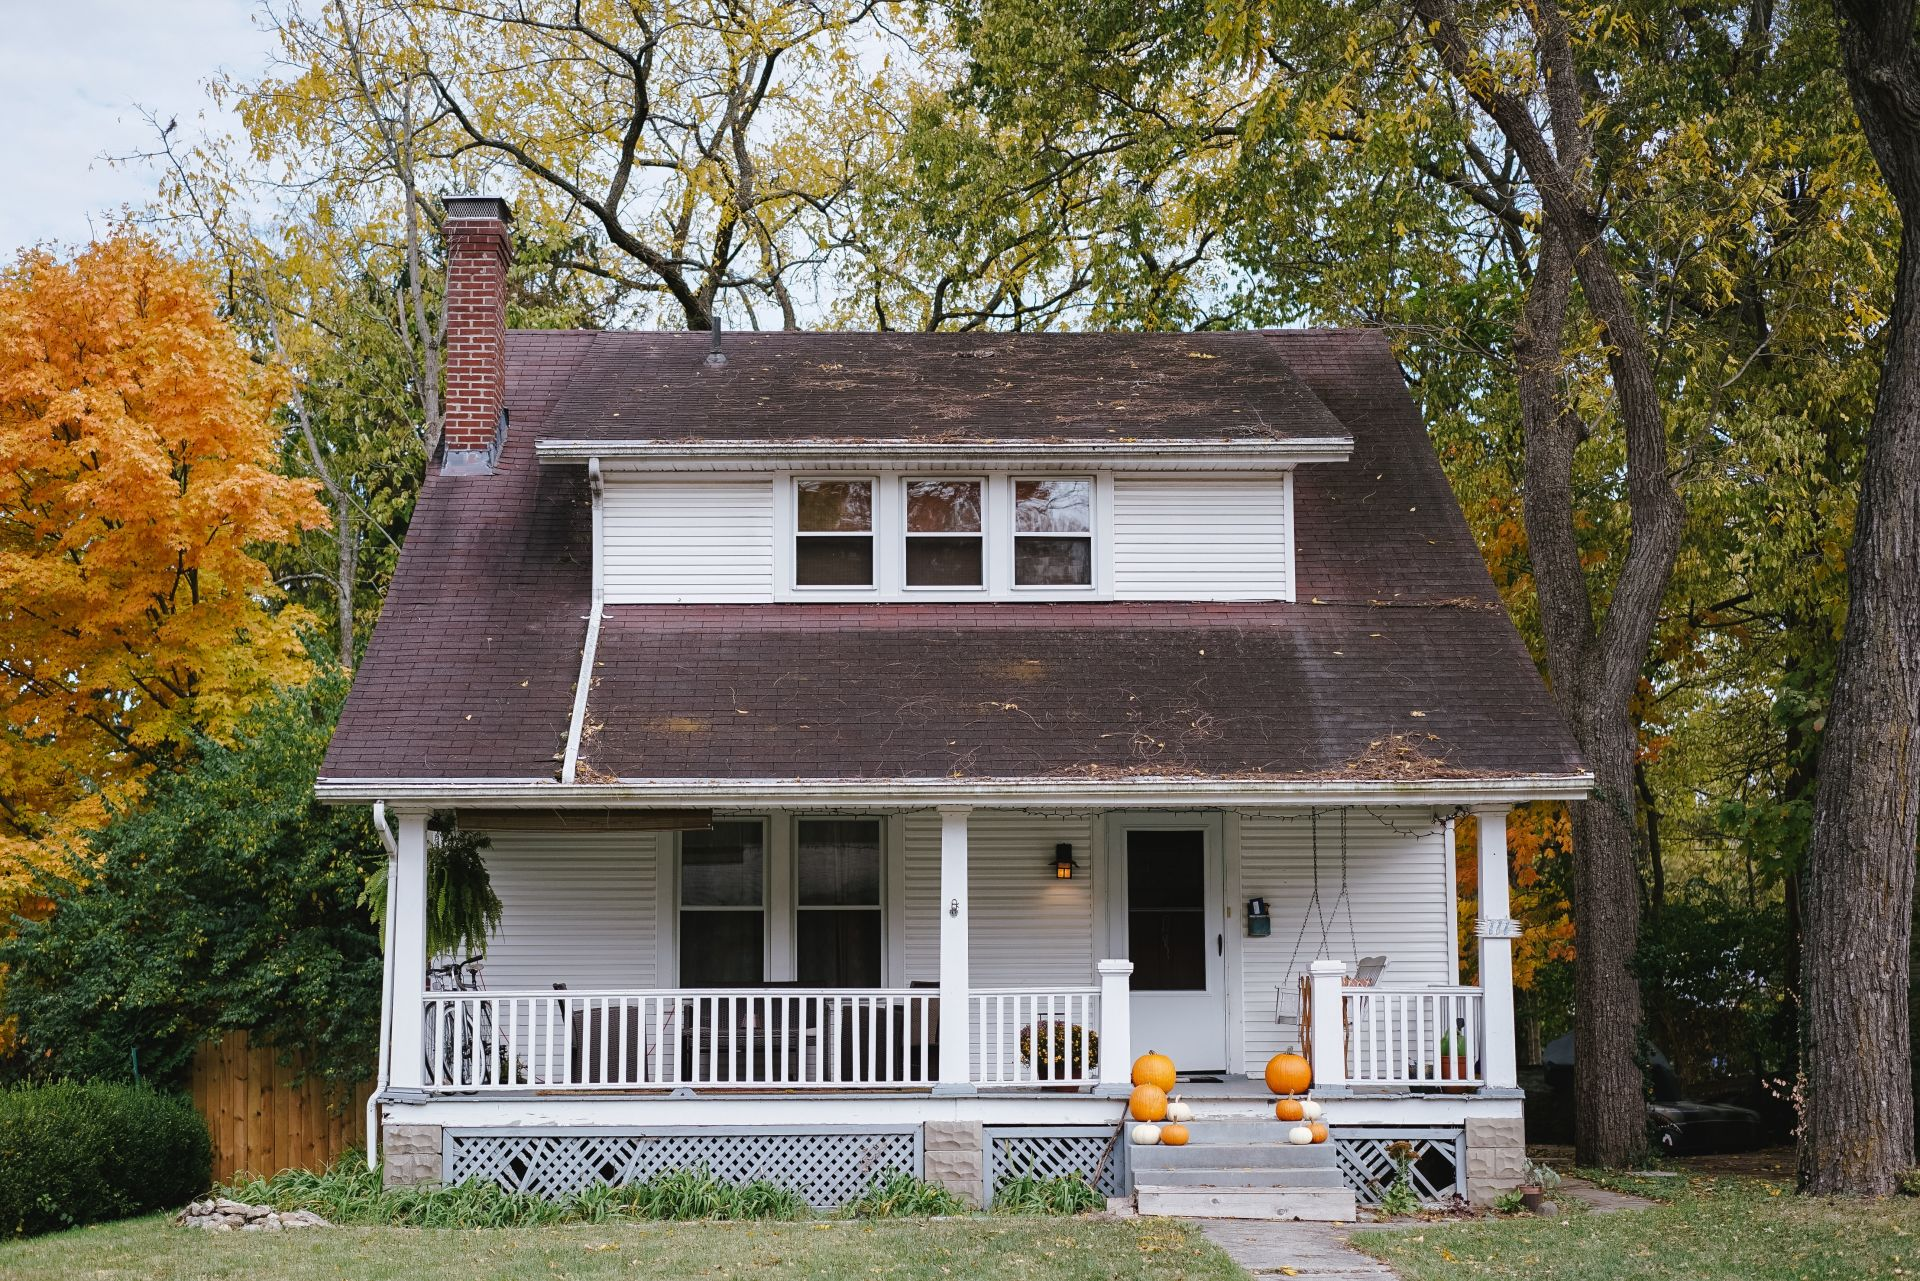 6 Tips for Selling Your Home in the Fall